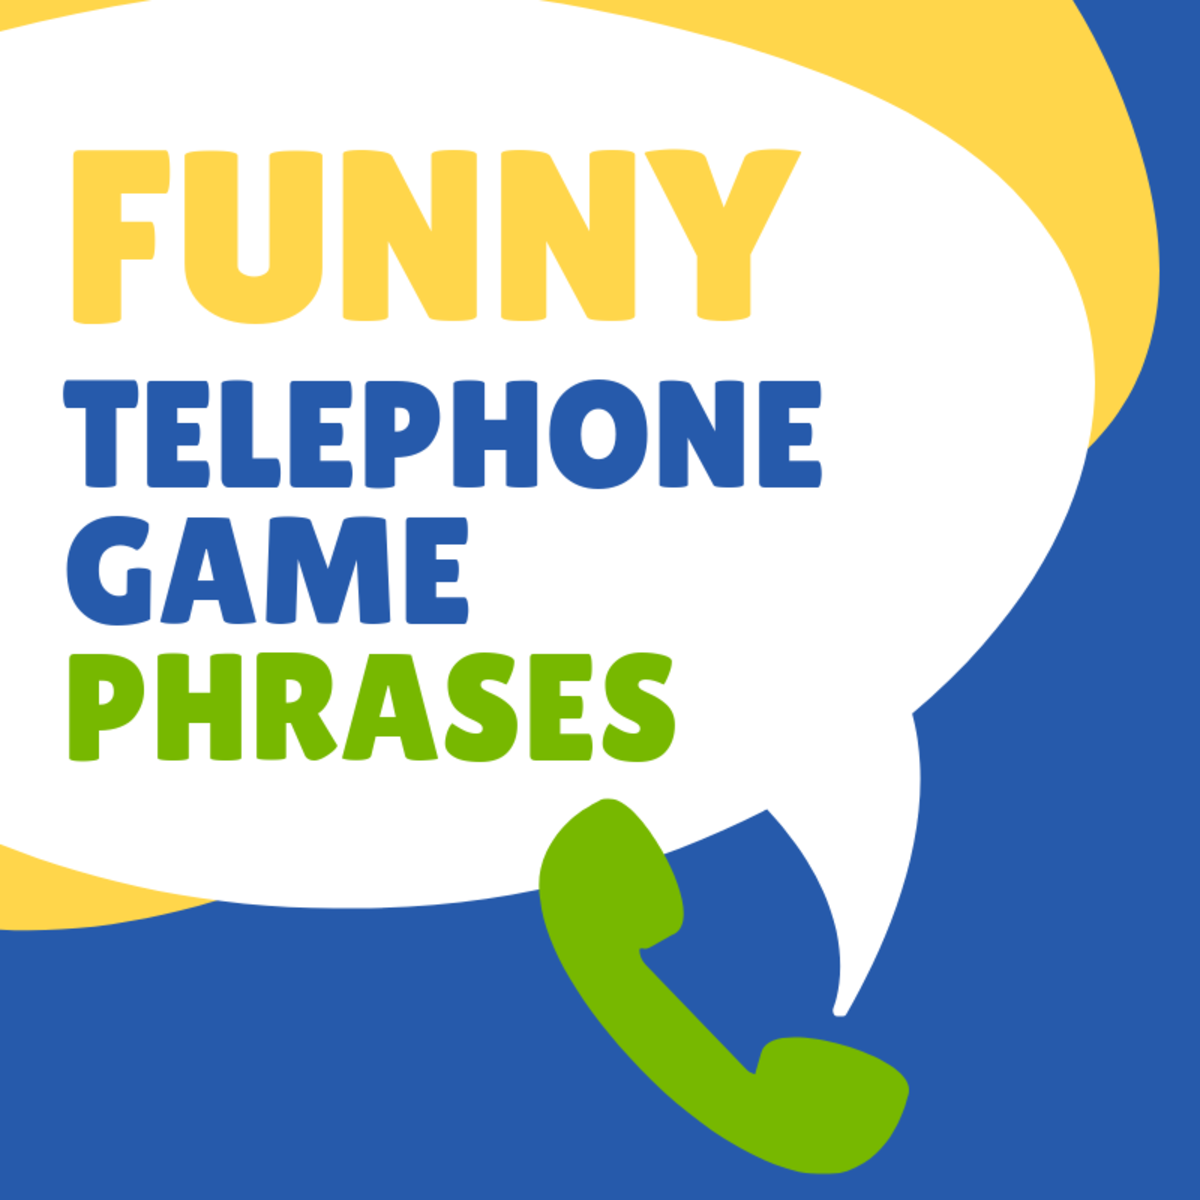 45 Funny Telephone Game Phrases